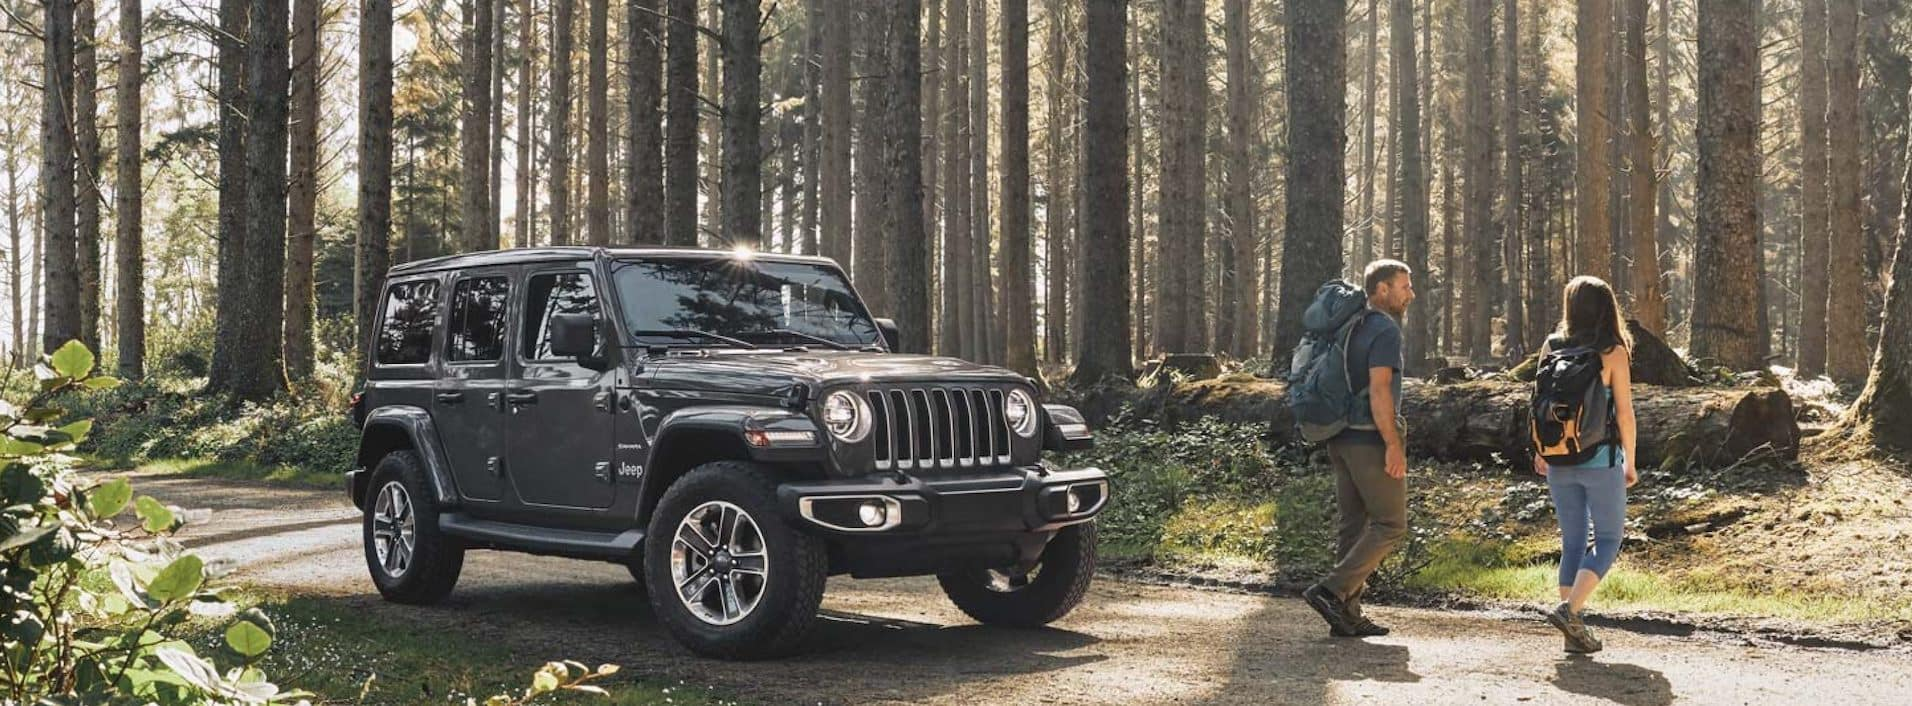 Jeep Wrangler in Forest